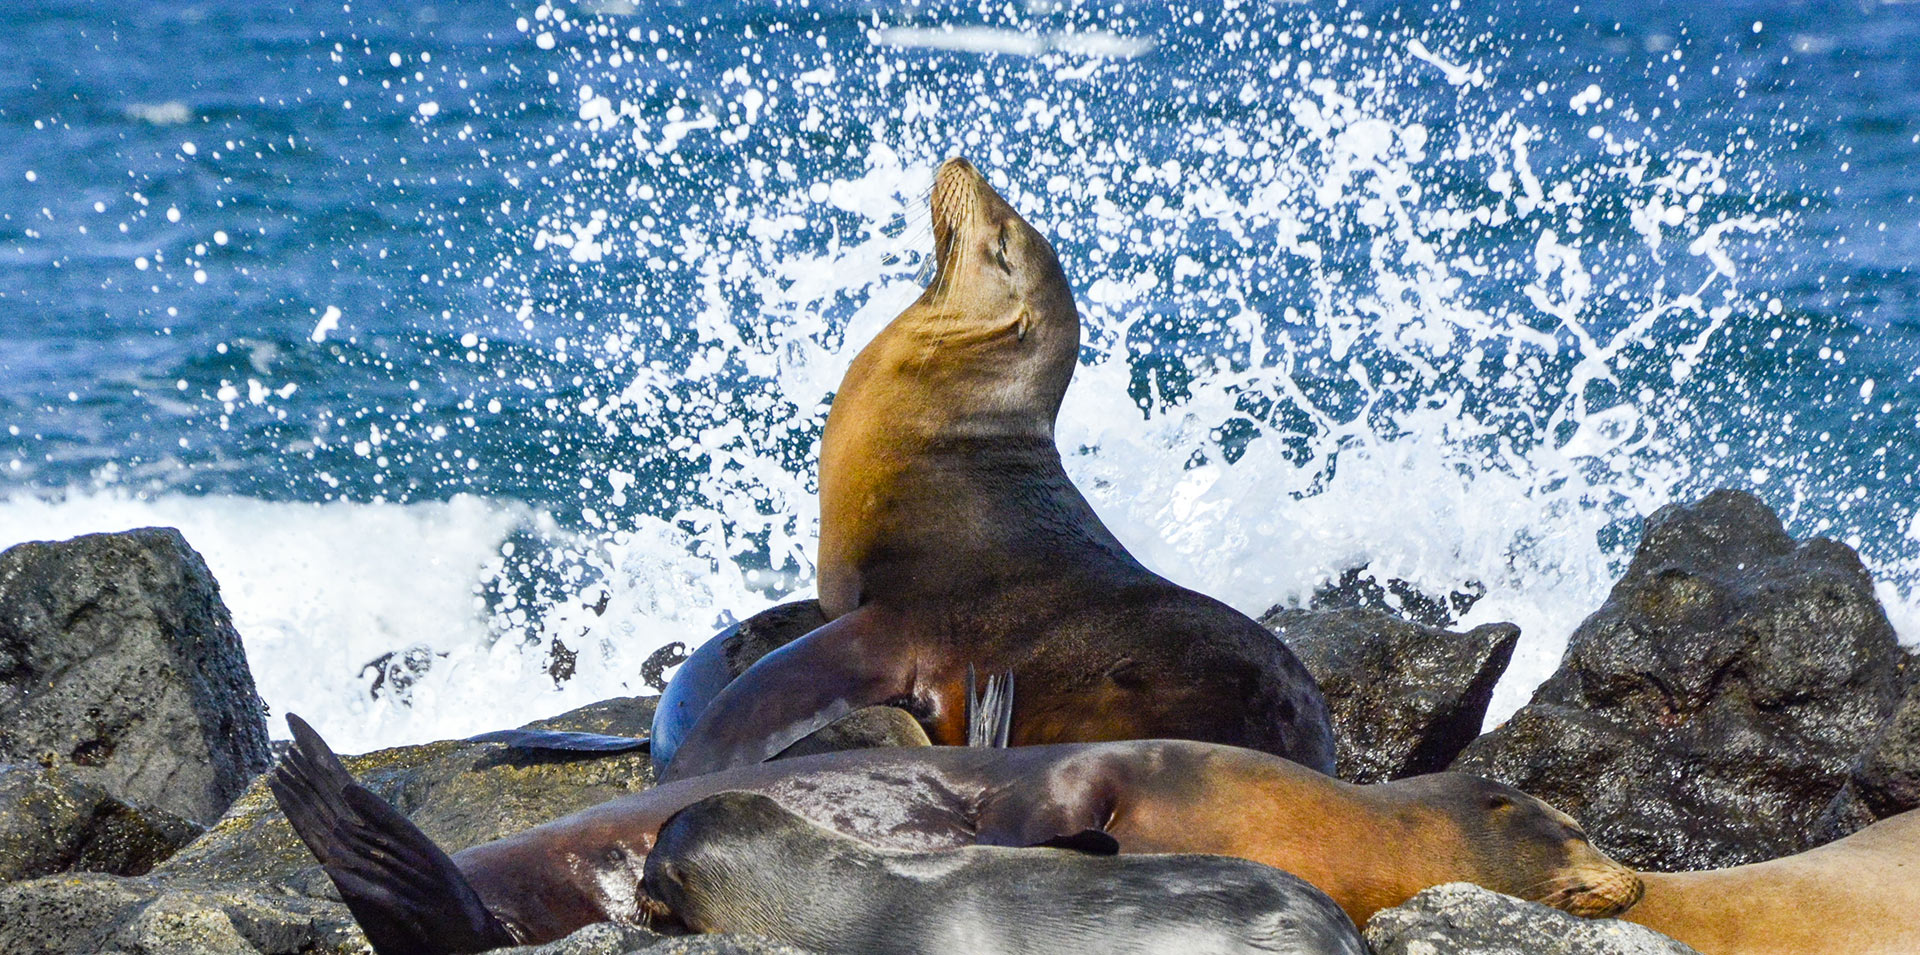 Sea lions resting on rocks in the Galapagos Islands